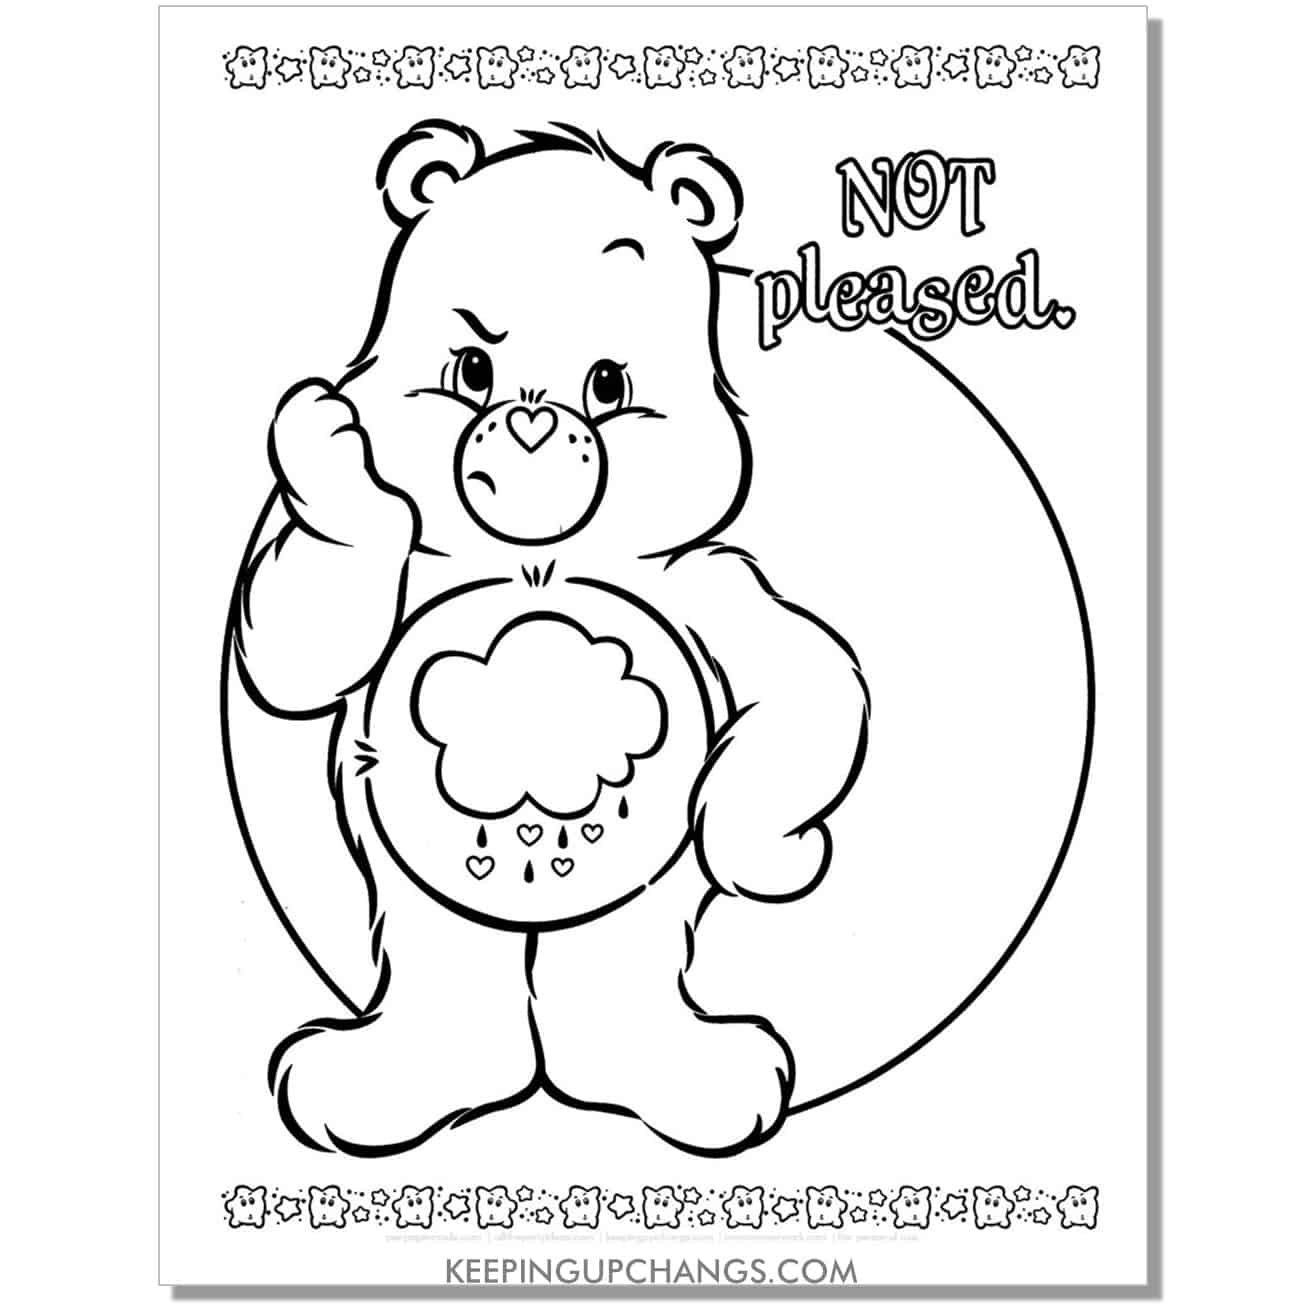 gloomy care bear coloring page not pleased.